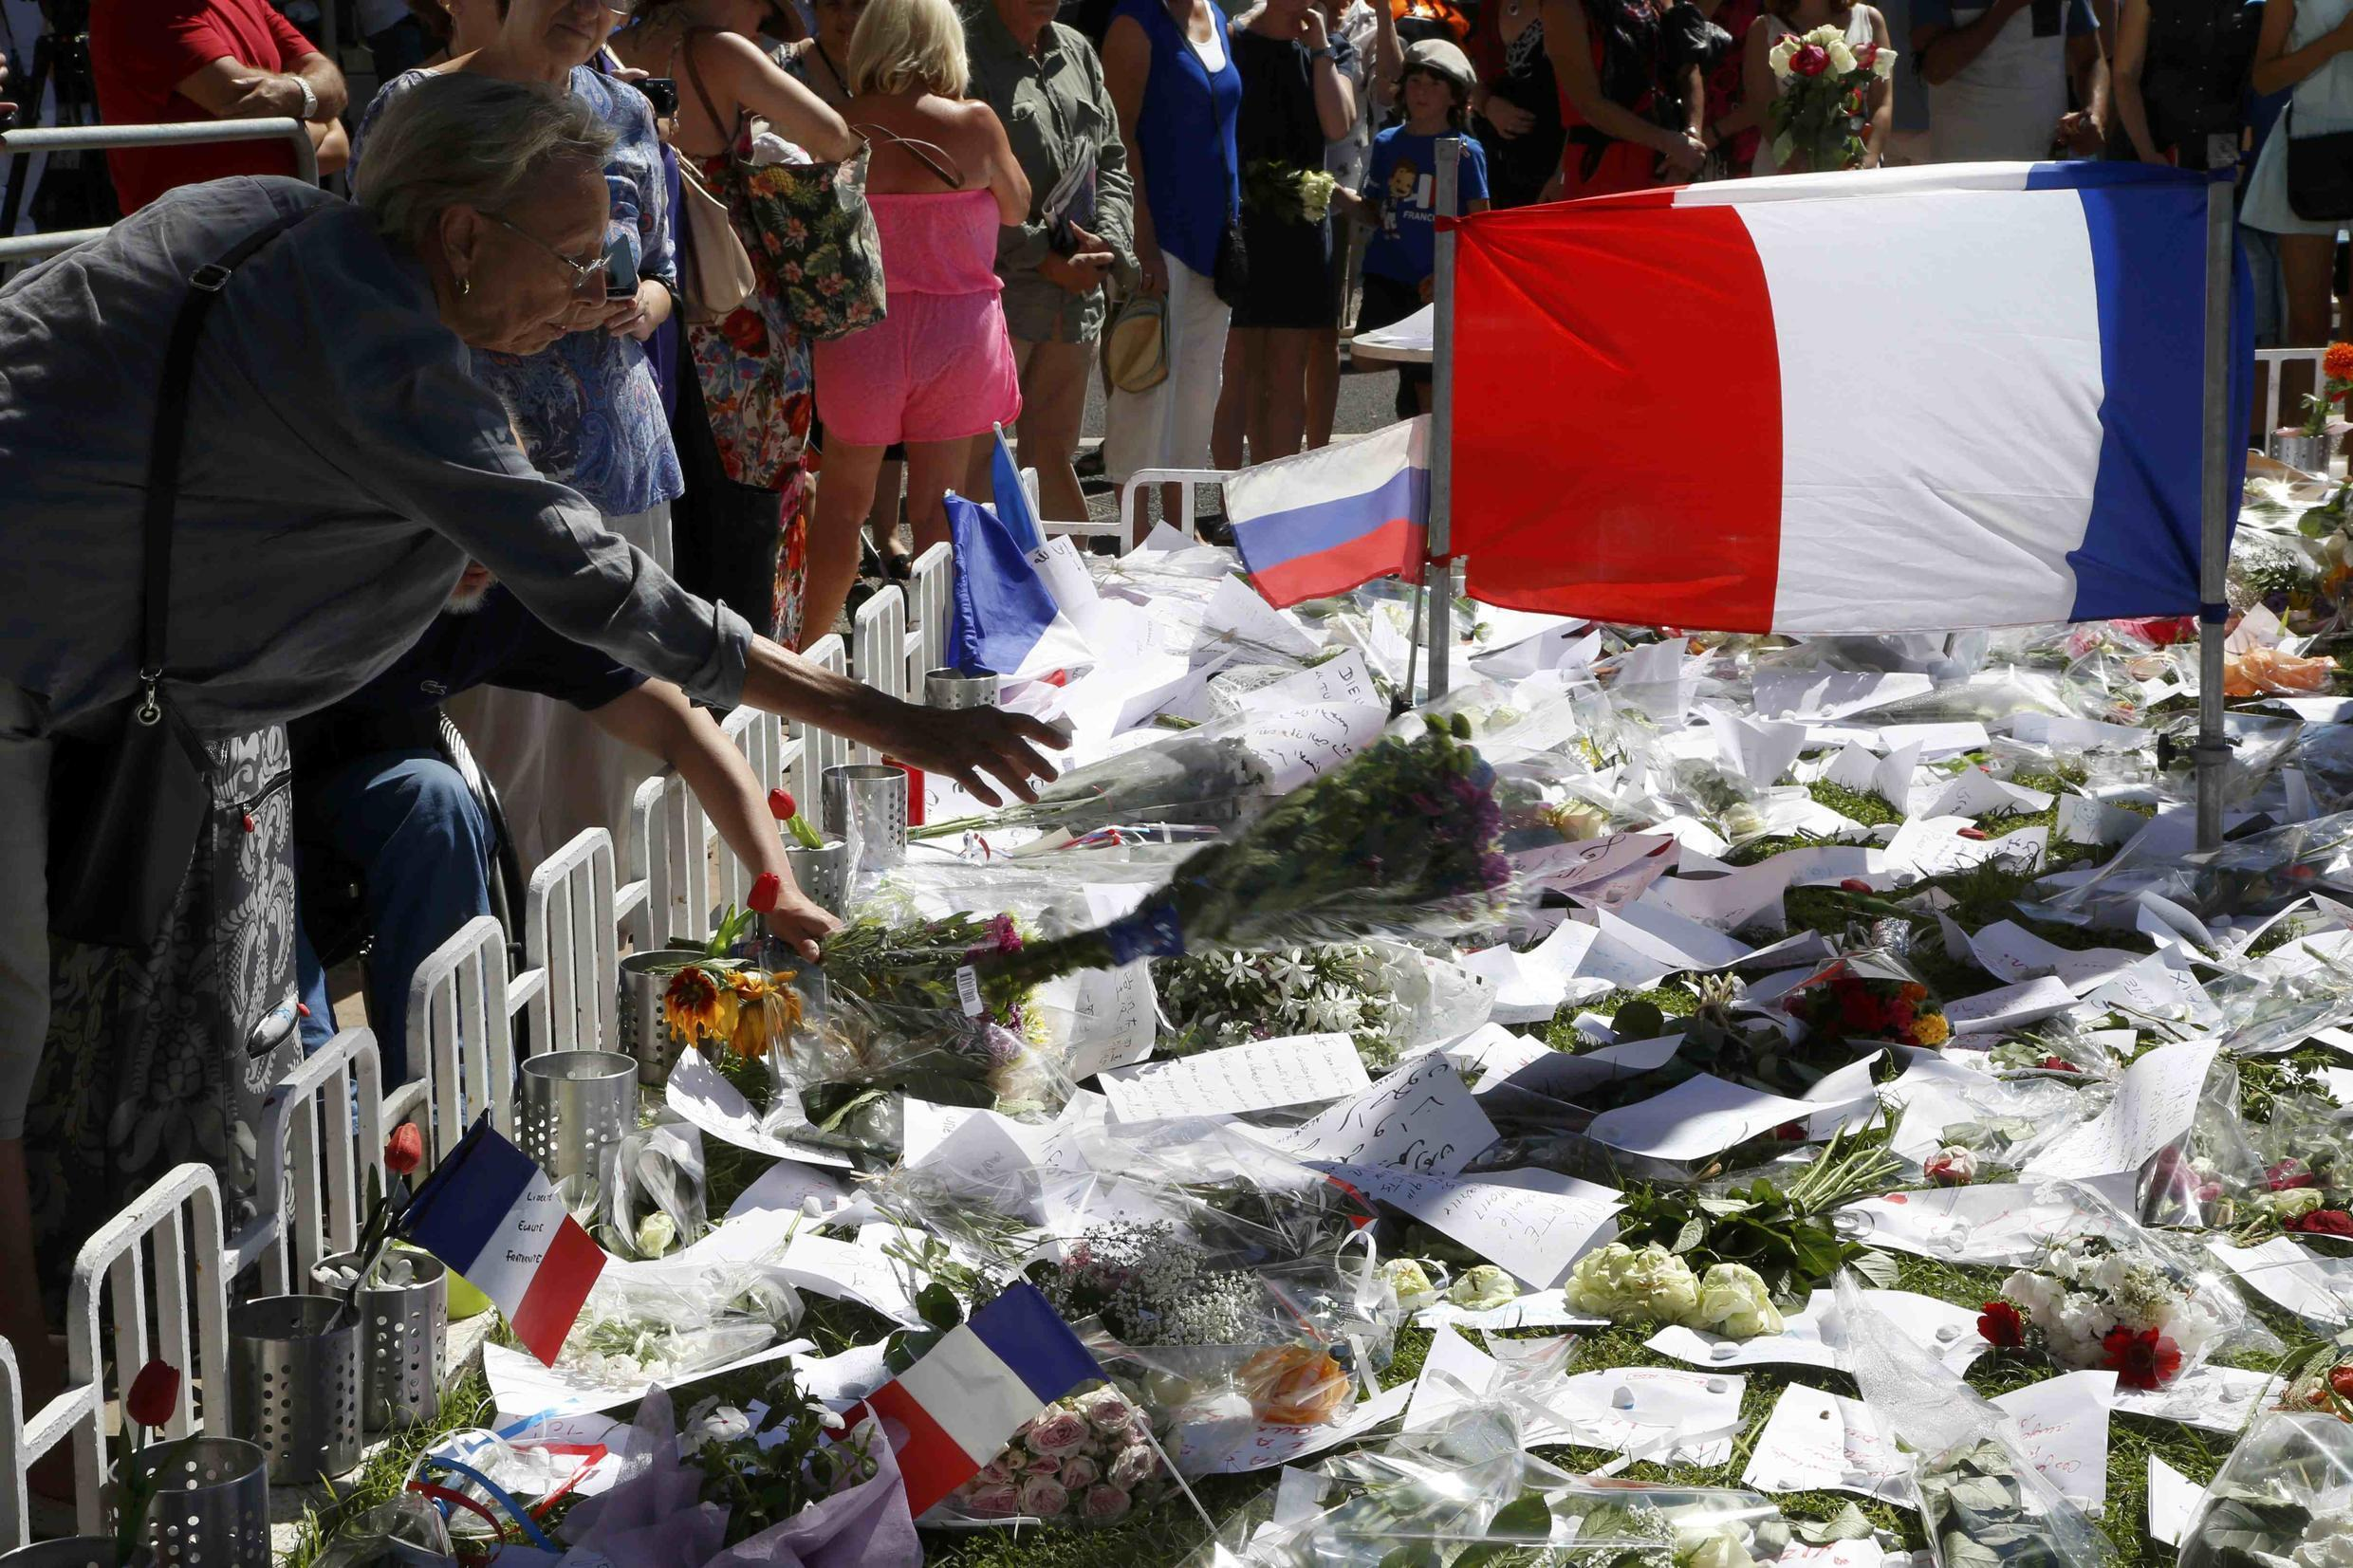 A woman places a bouquet of flowers near French flags placed in tribute to victims of the attack in Nice.